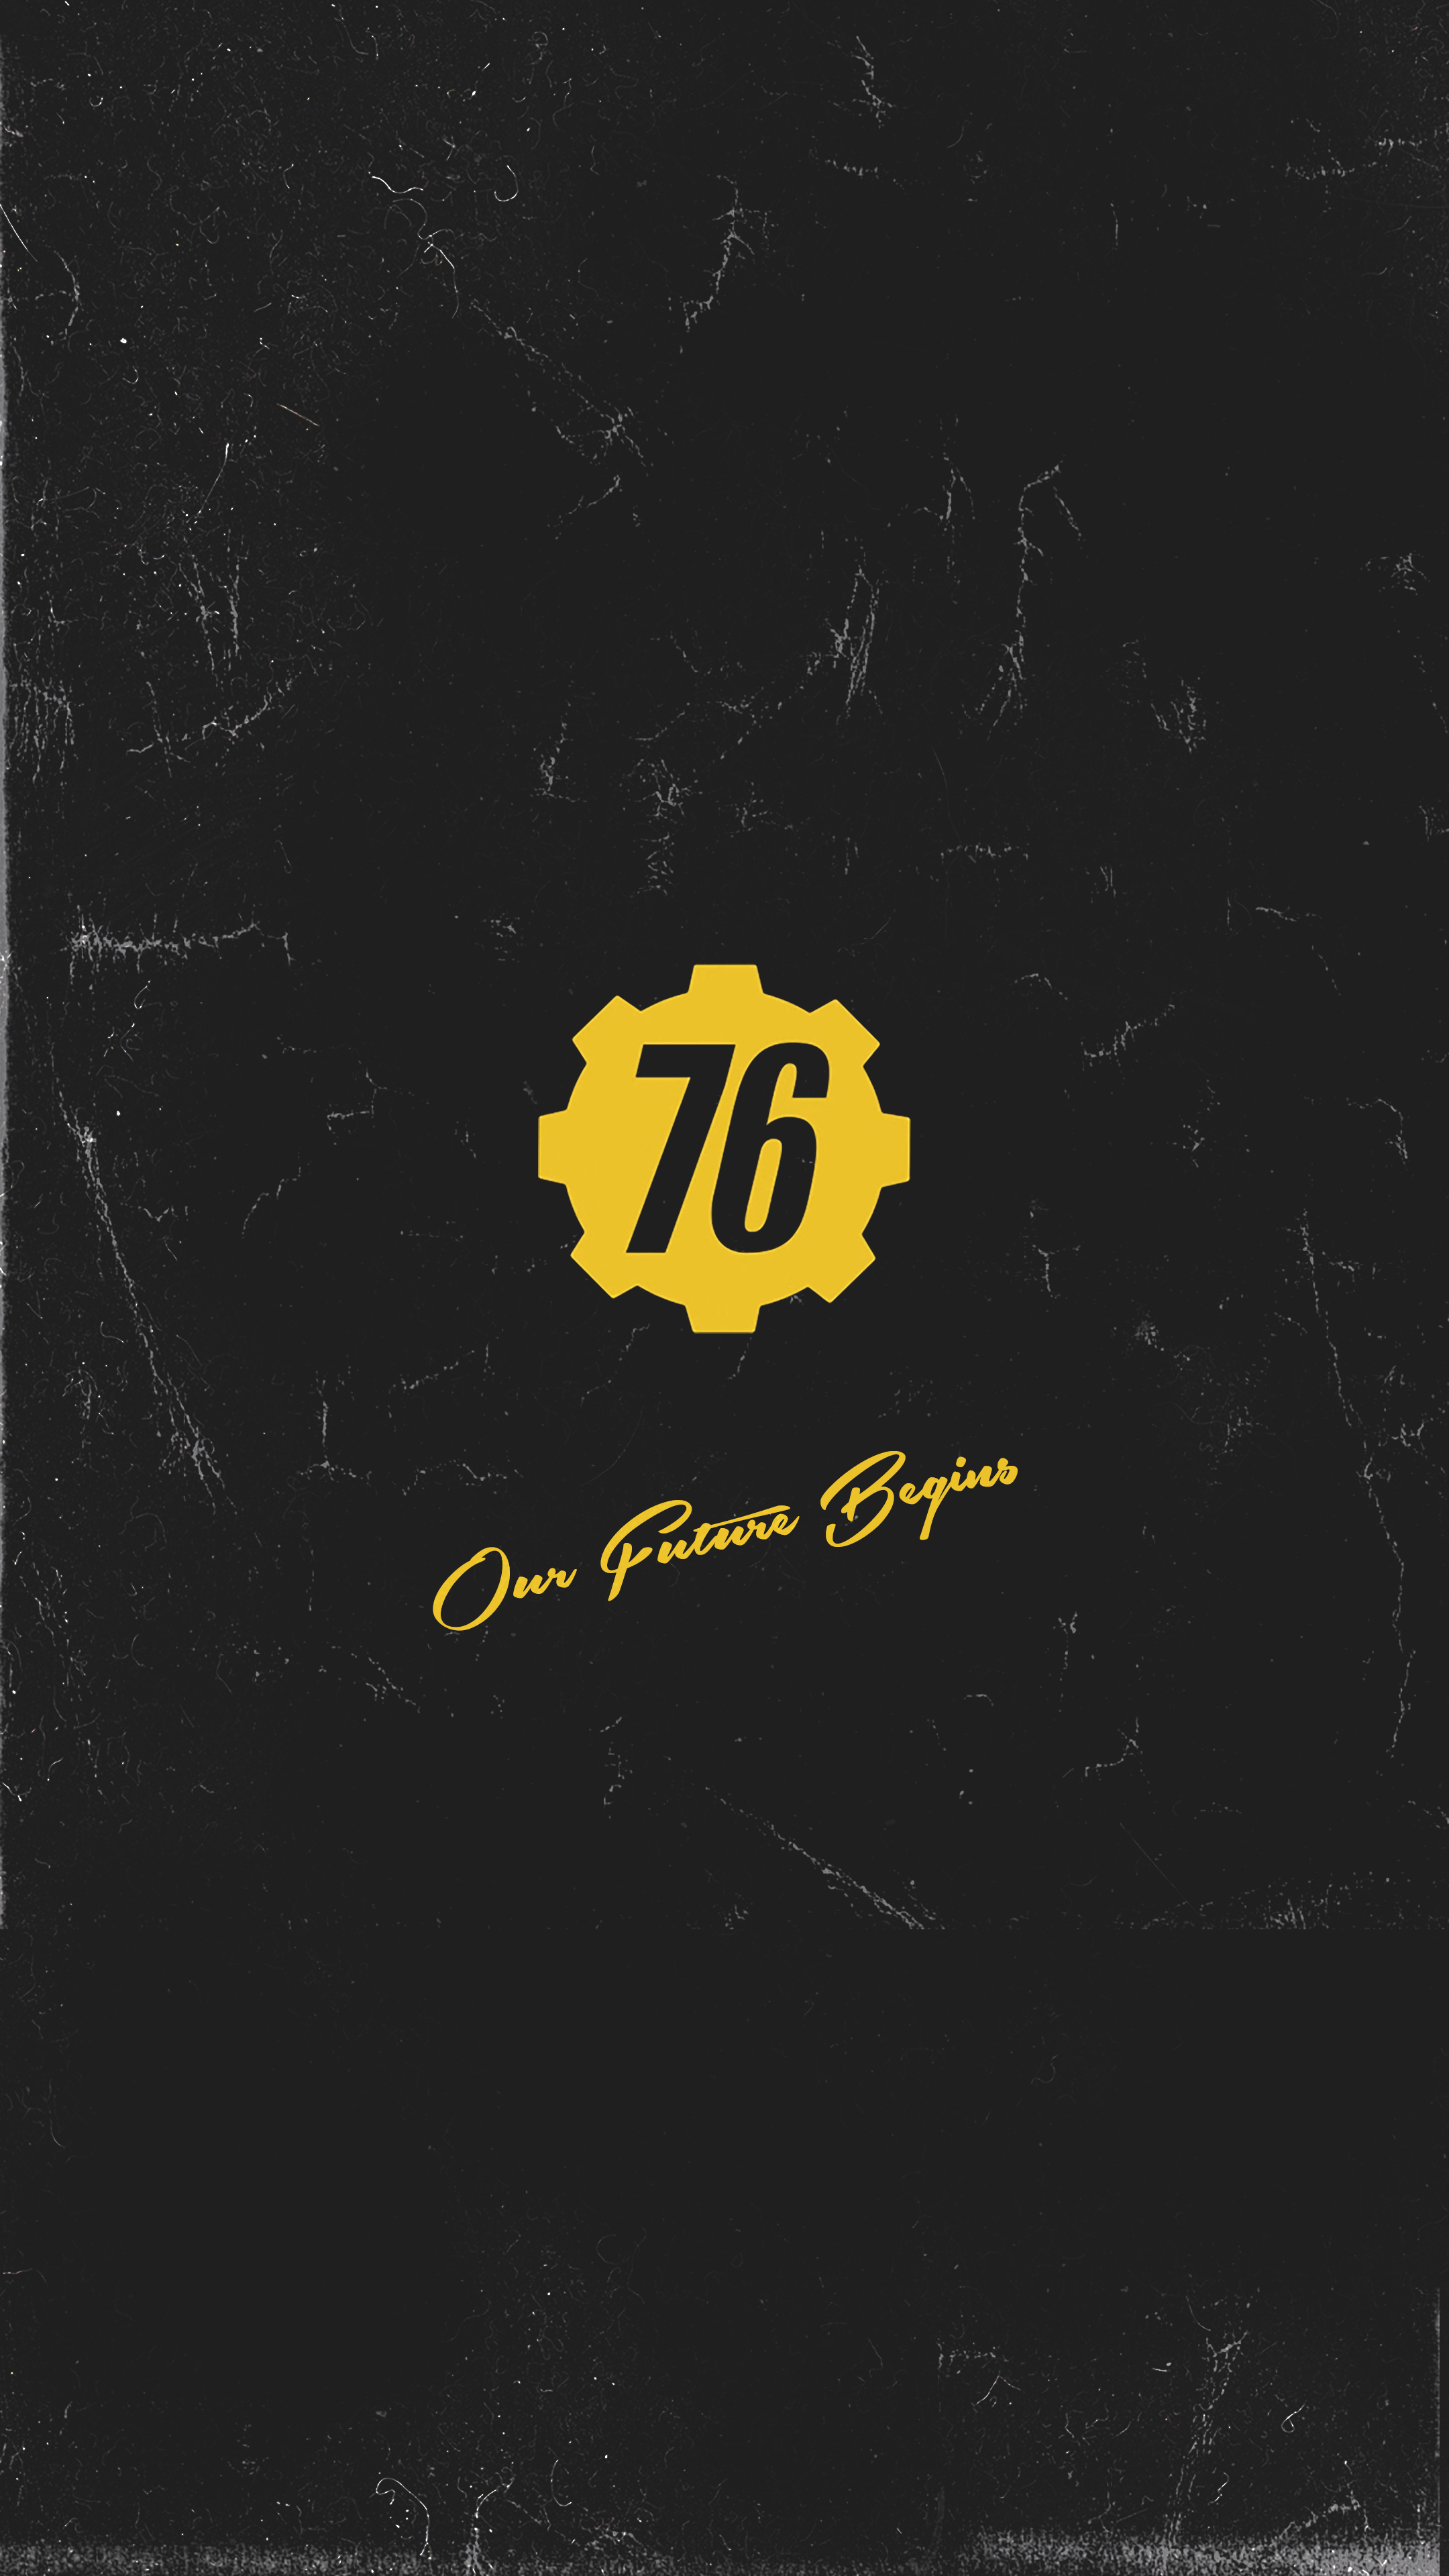 Simple And Magnificent Fallout 76 Wallpaper For Gamers To Download